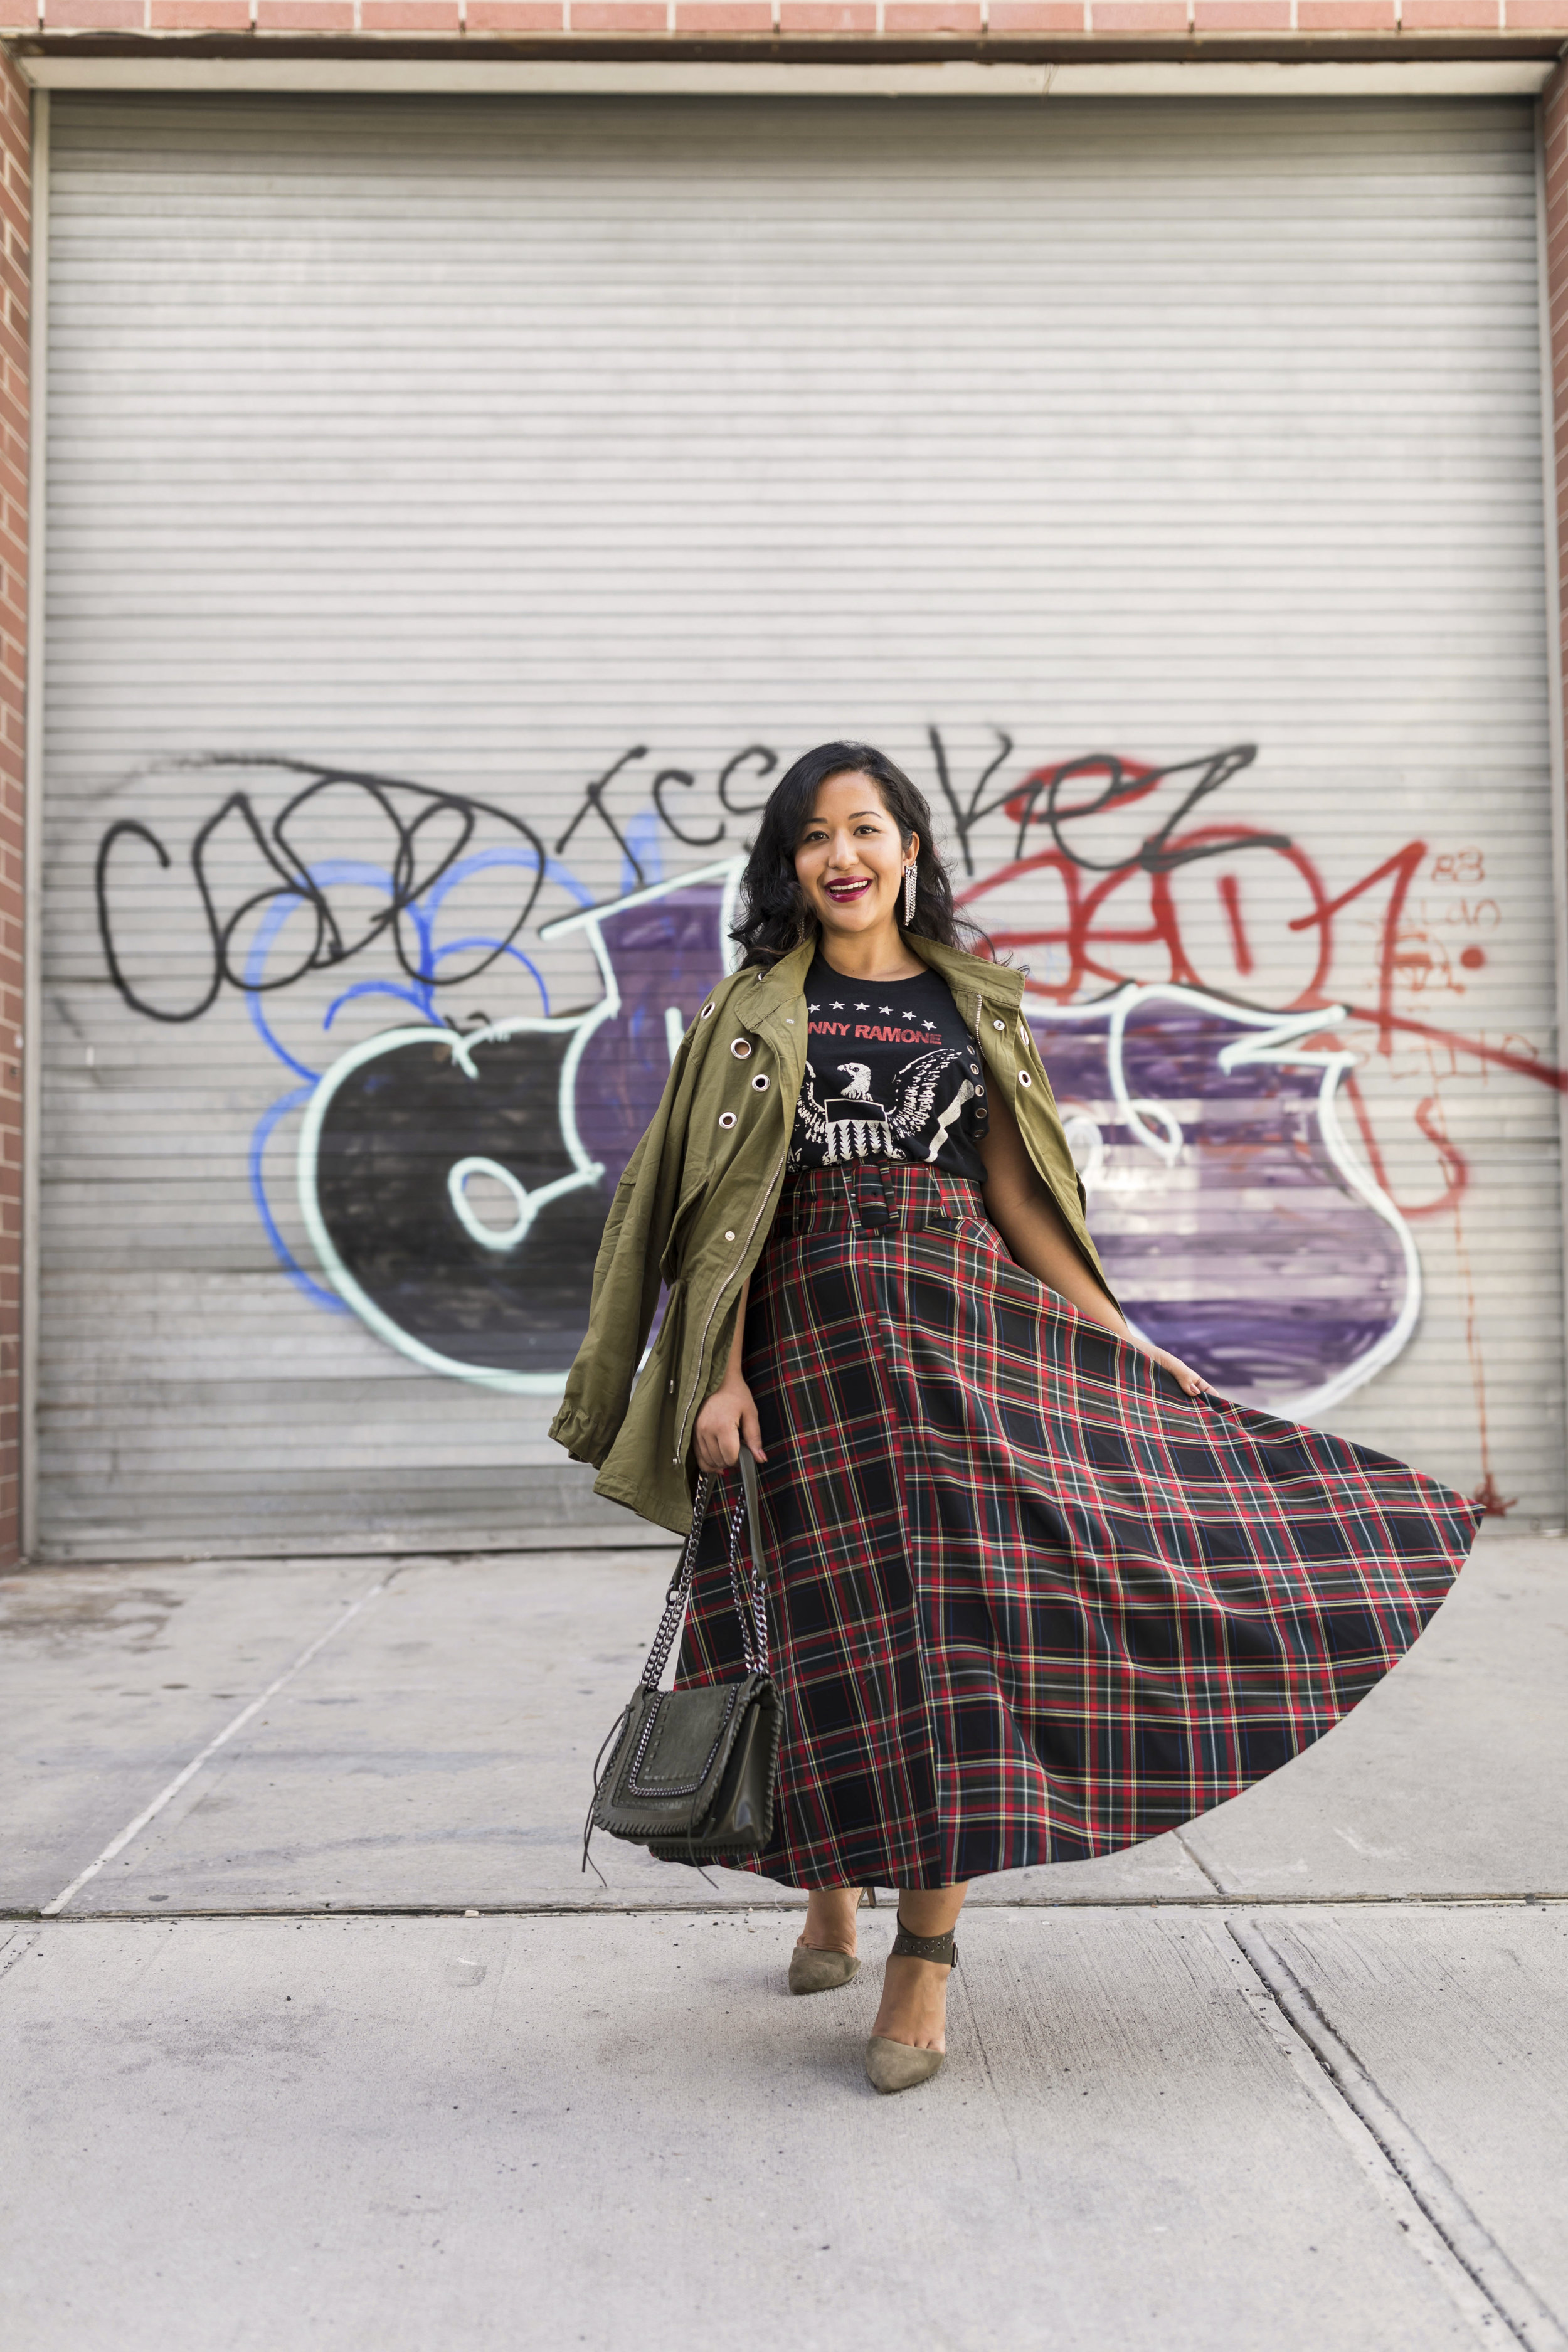 PLAID PUNK - Mixing plaid with punk influences